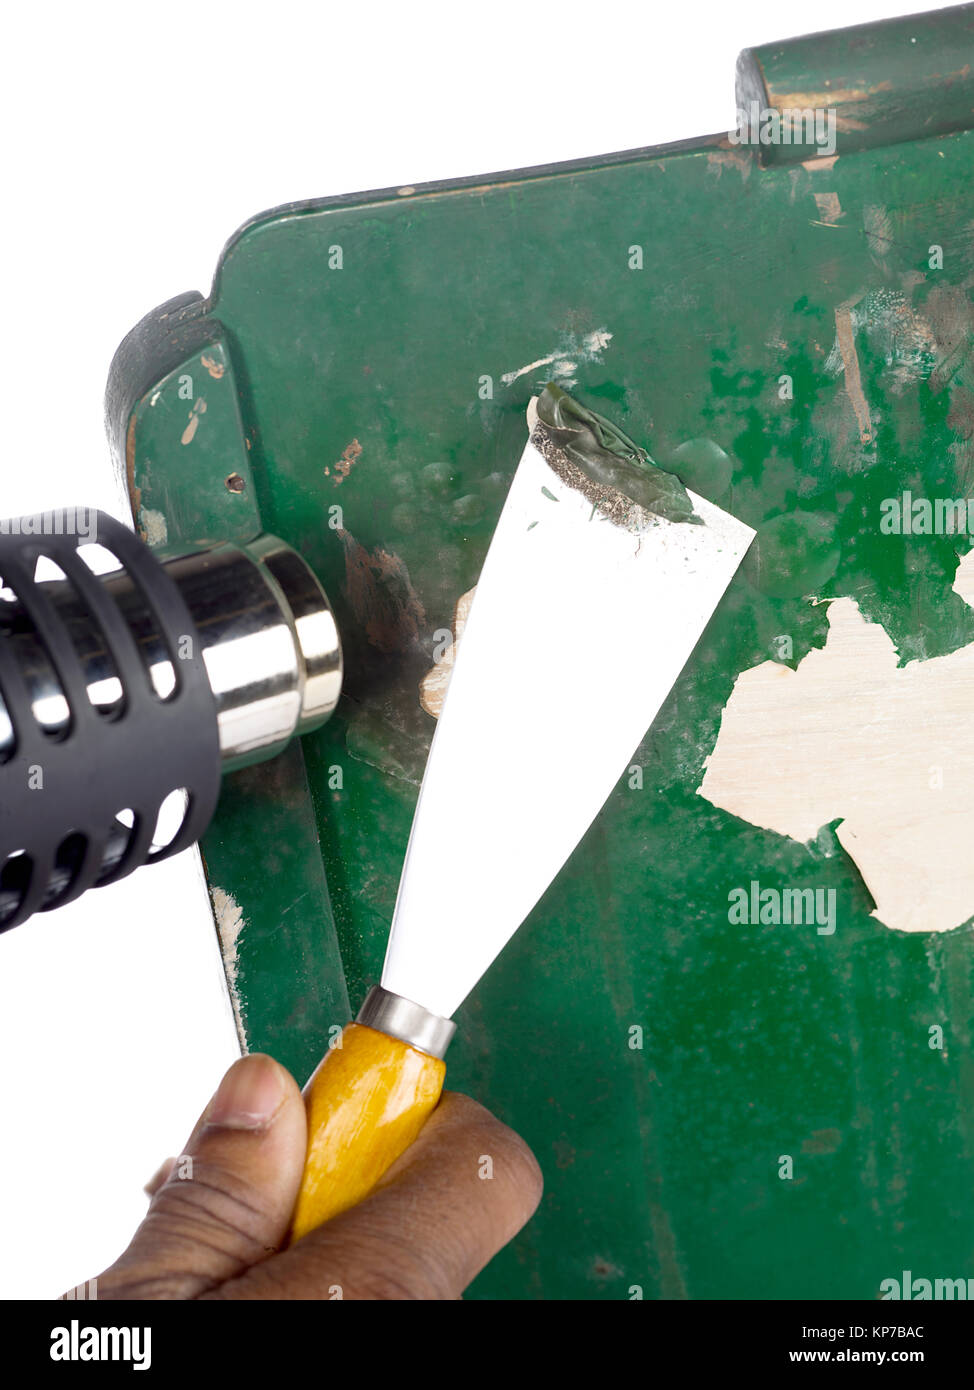 Paint stripper stock photos paint stripper stock images for Heat gun to remove paint